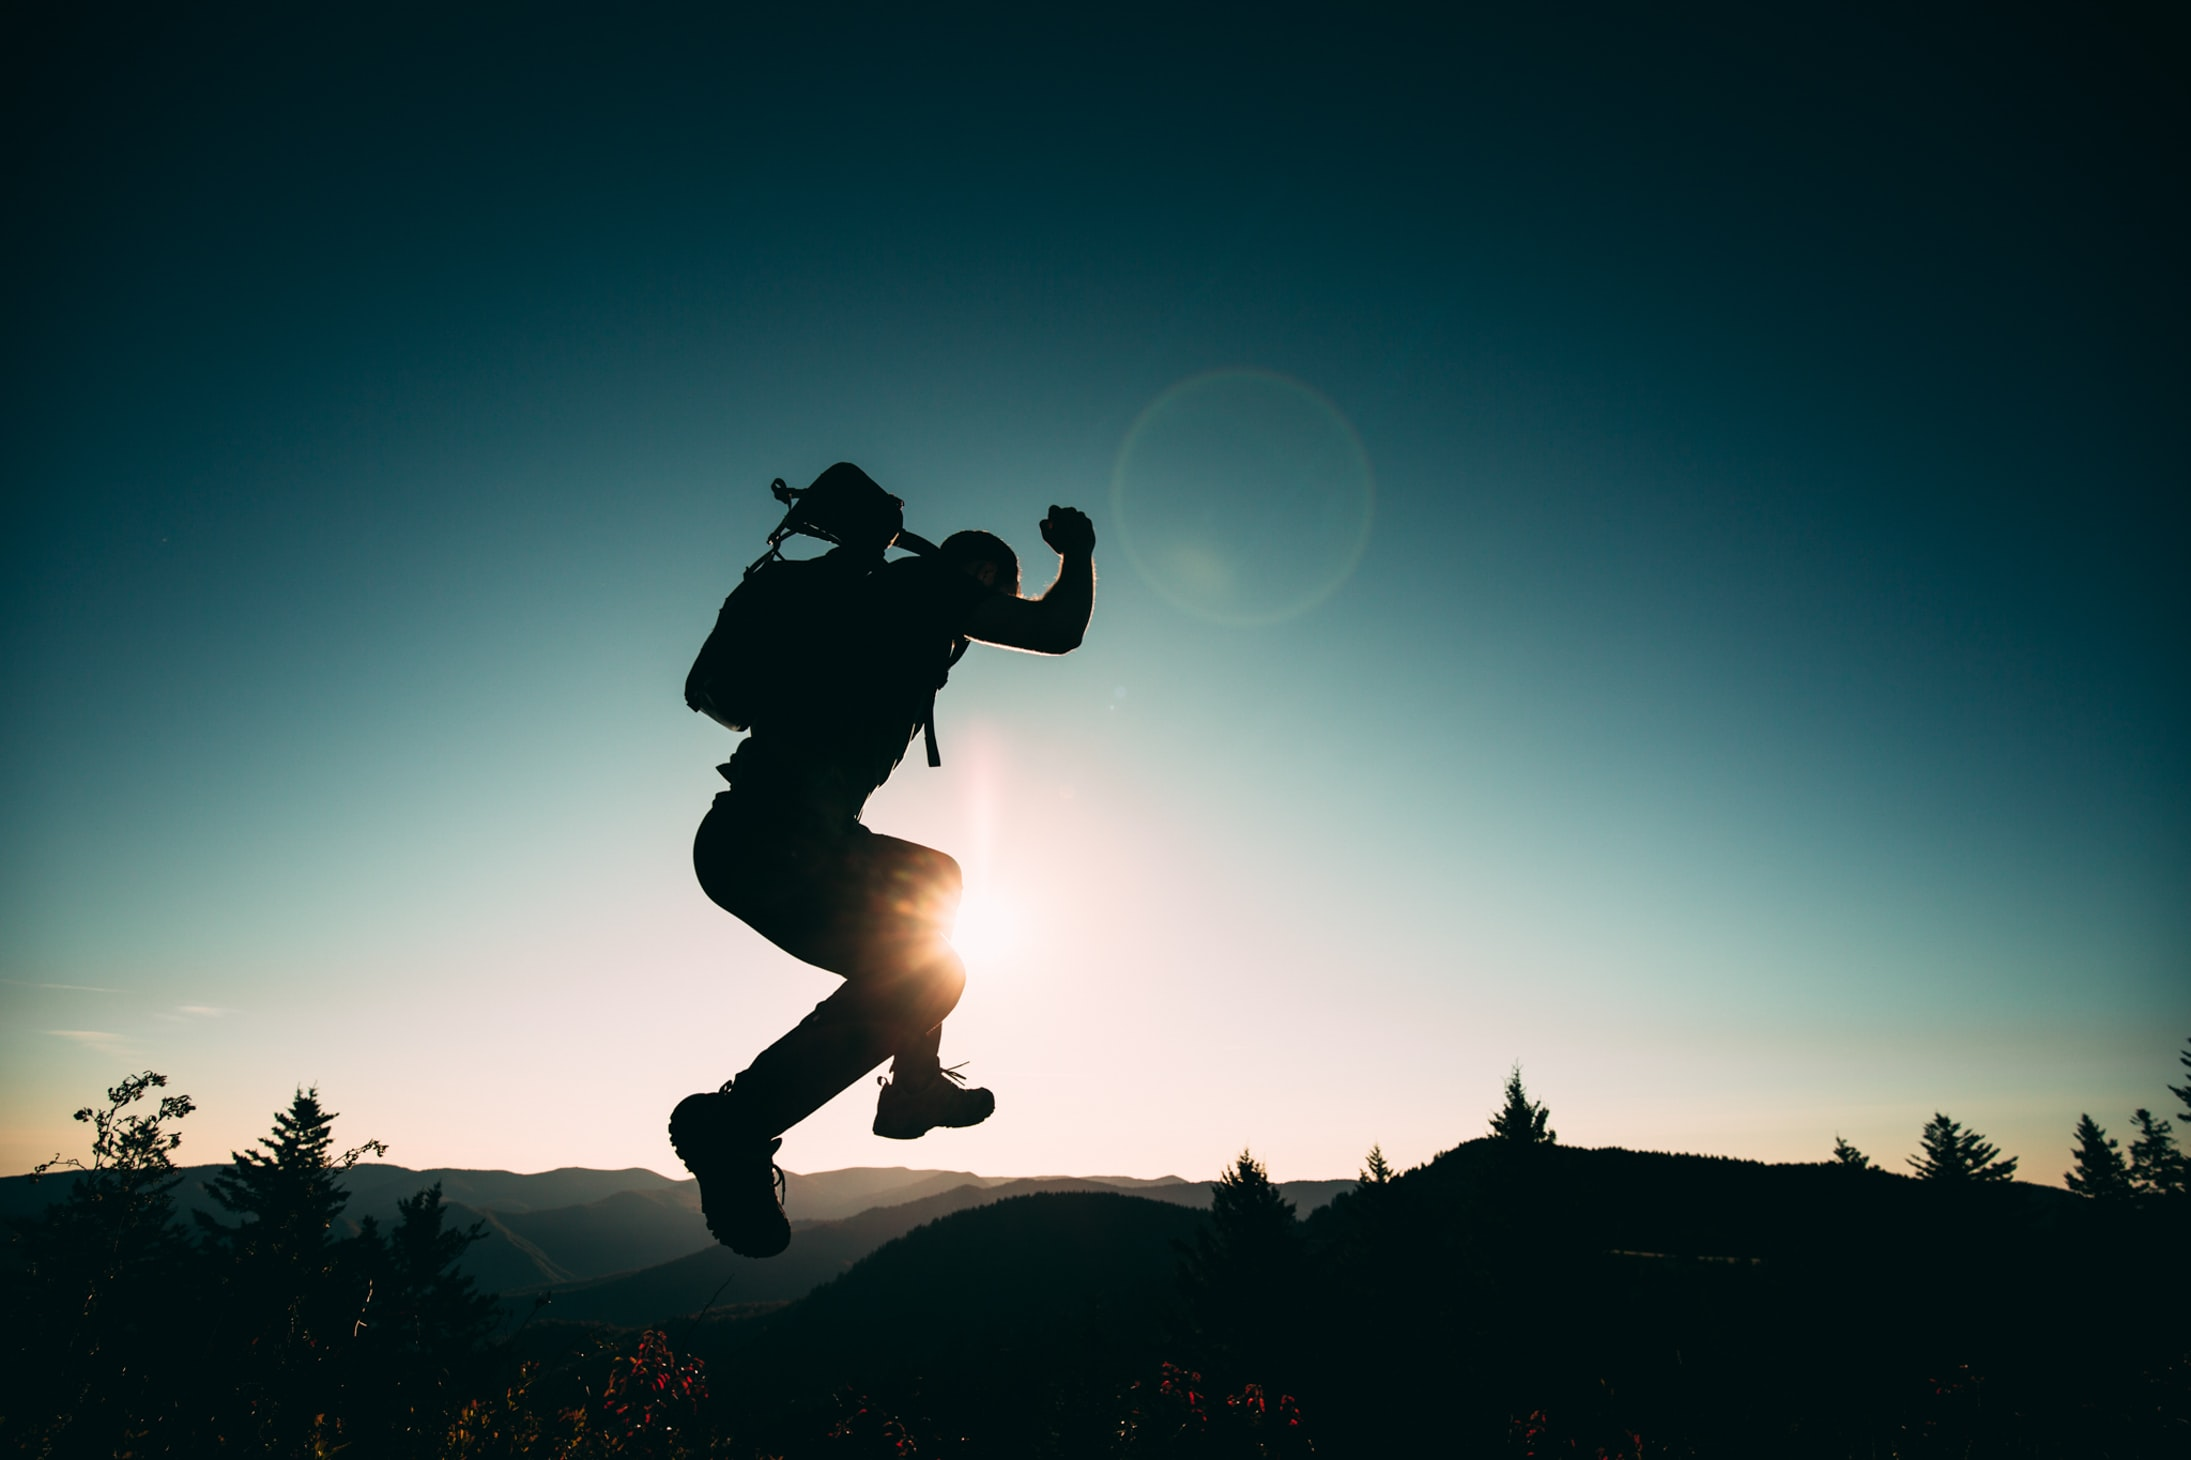 silhouette of jumping person on hill